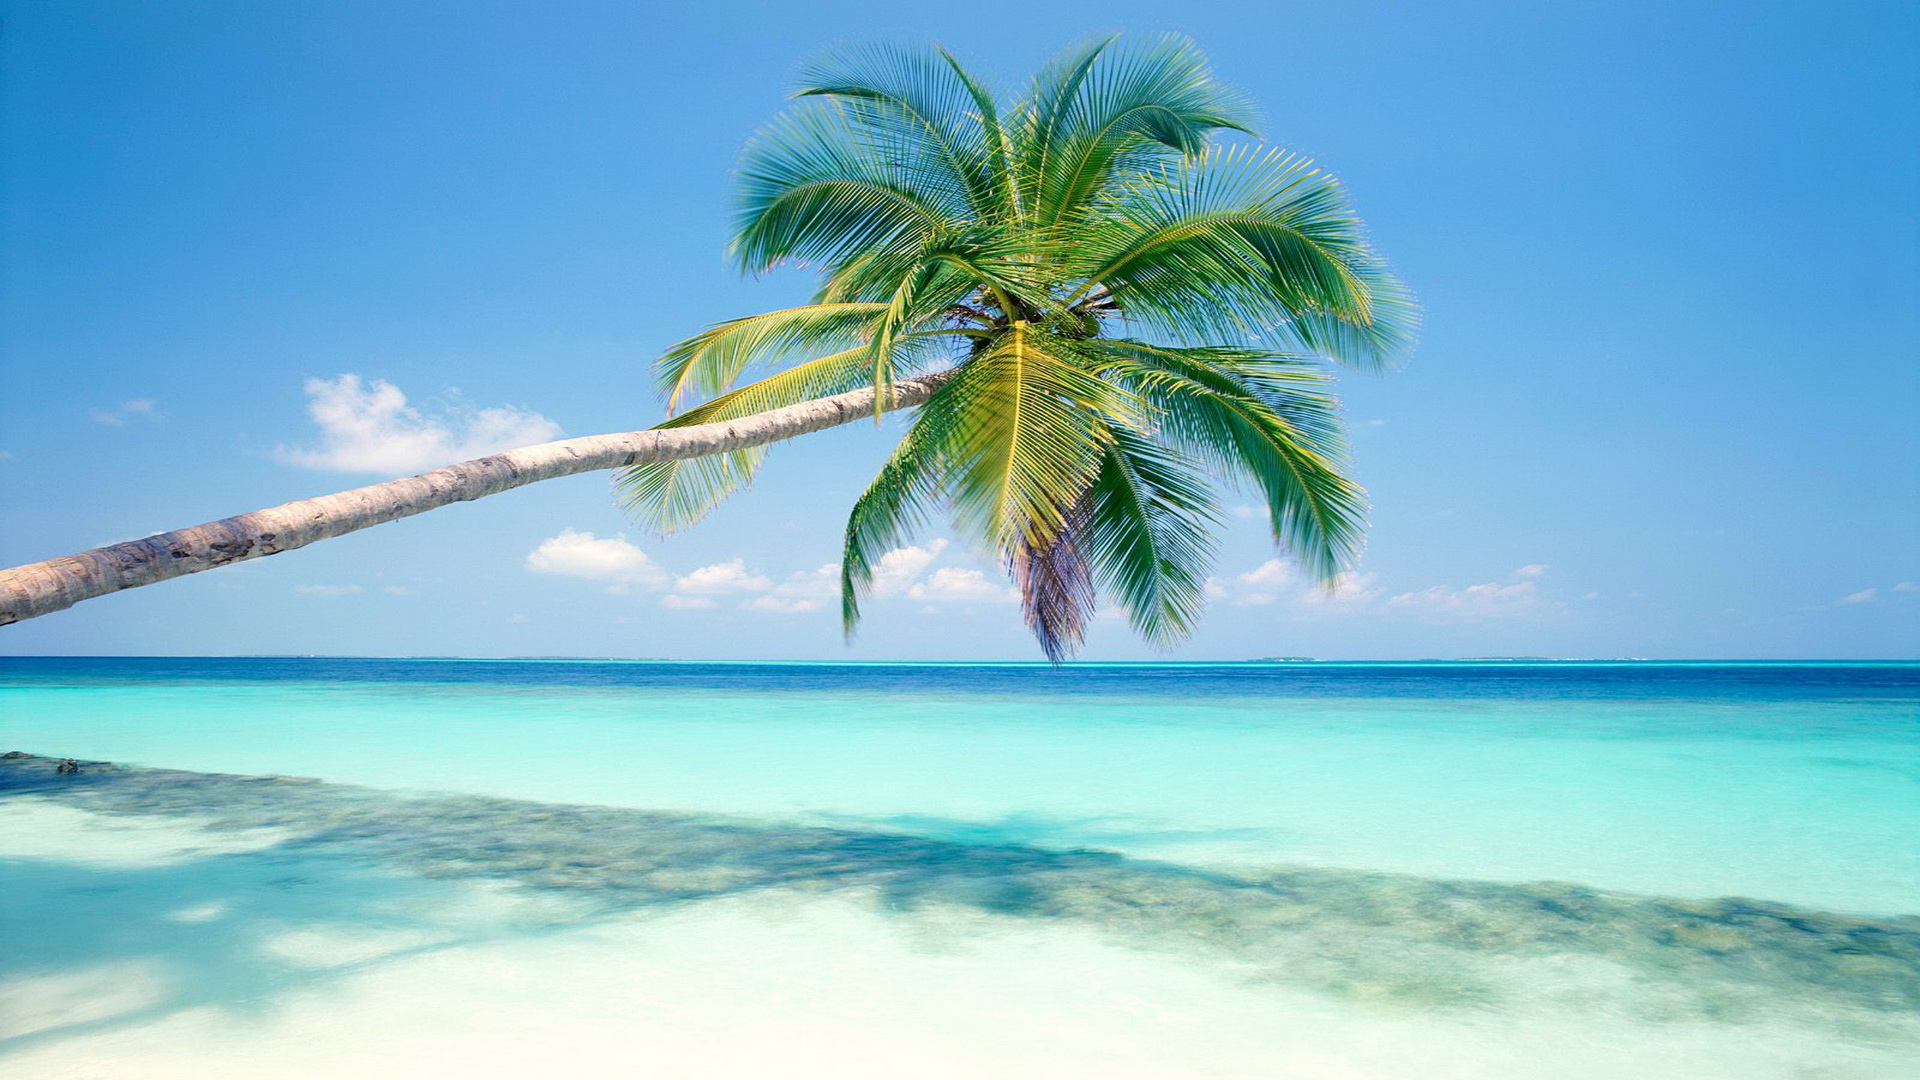 Hd Tropical Island Beach Paradise Wallpapers And Backgrounds: [68+] Tropical Desktop Wallpaper On WallpaperSafari